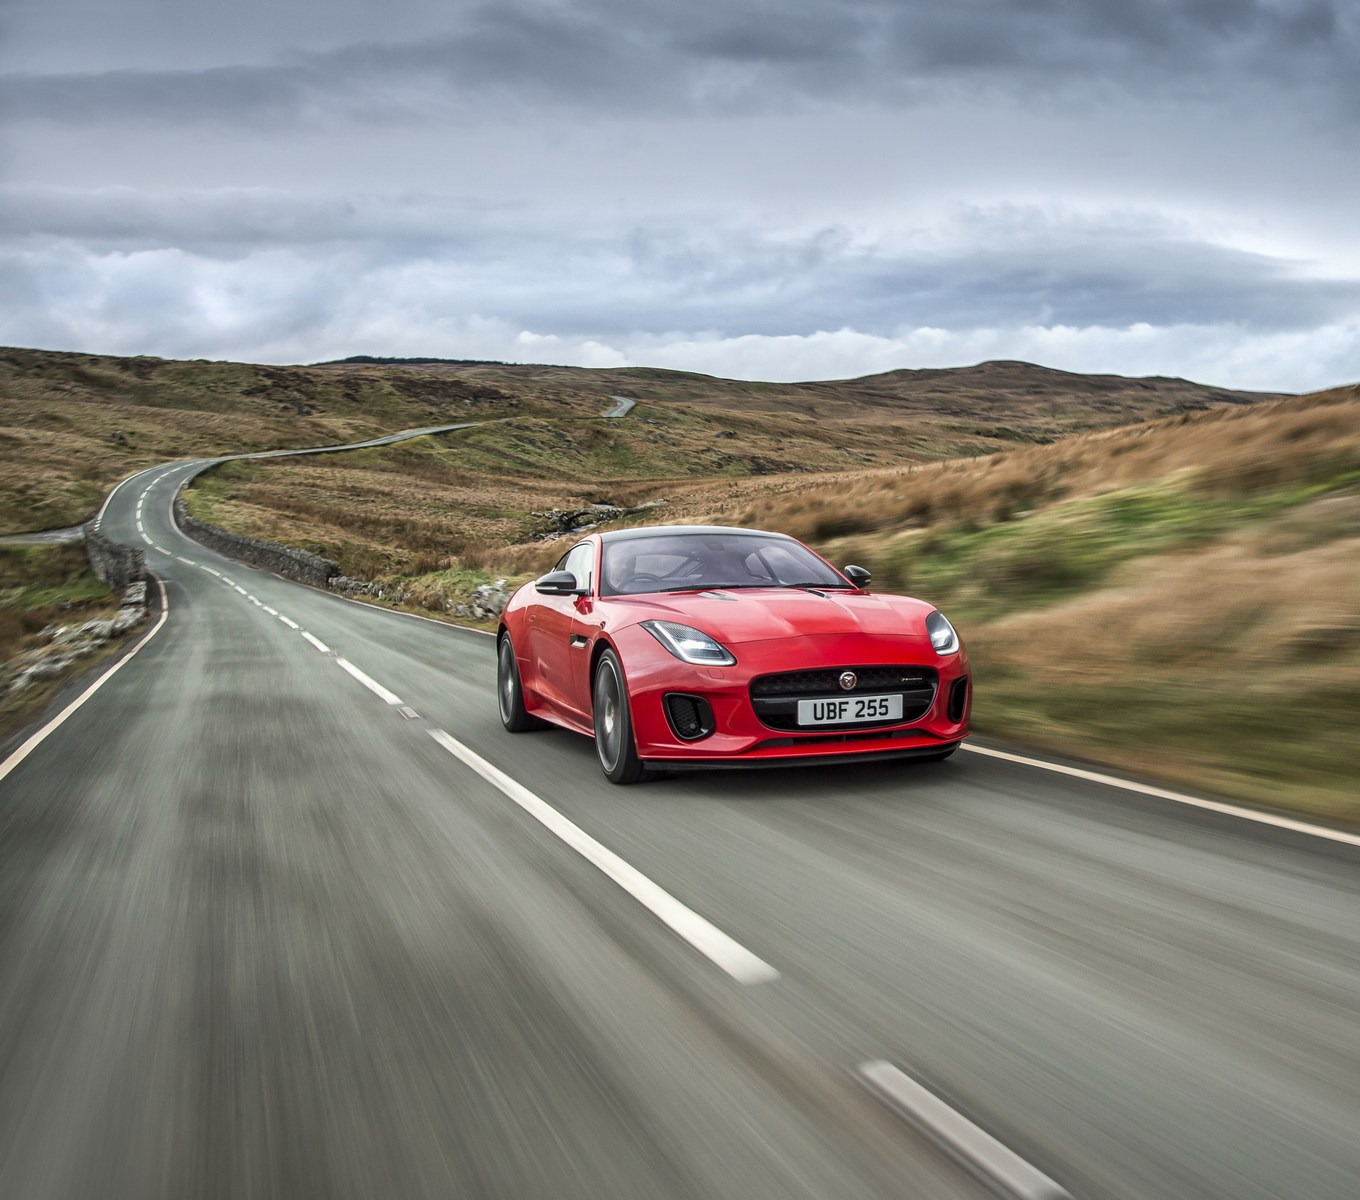 Jaguar Sport: Jaguar Committed To Sports Cars, F-Type Replacement To Be Electrified